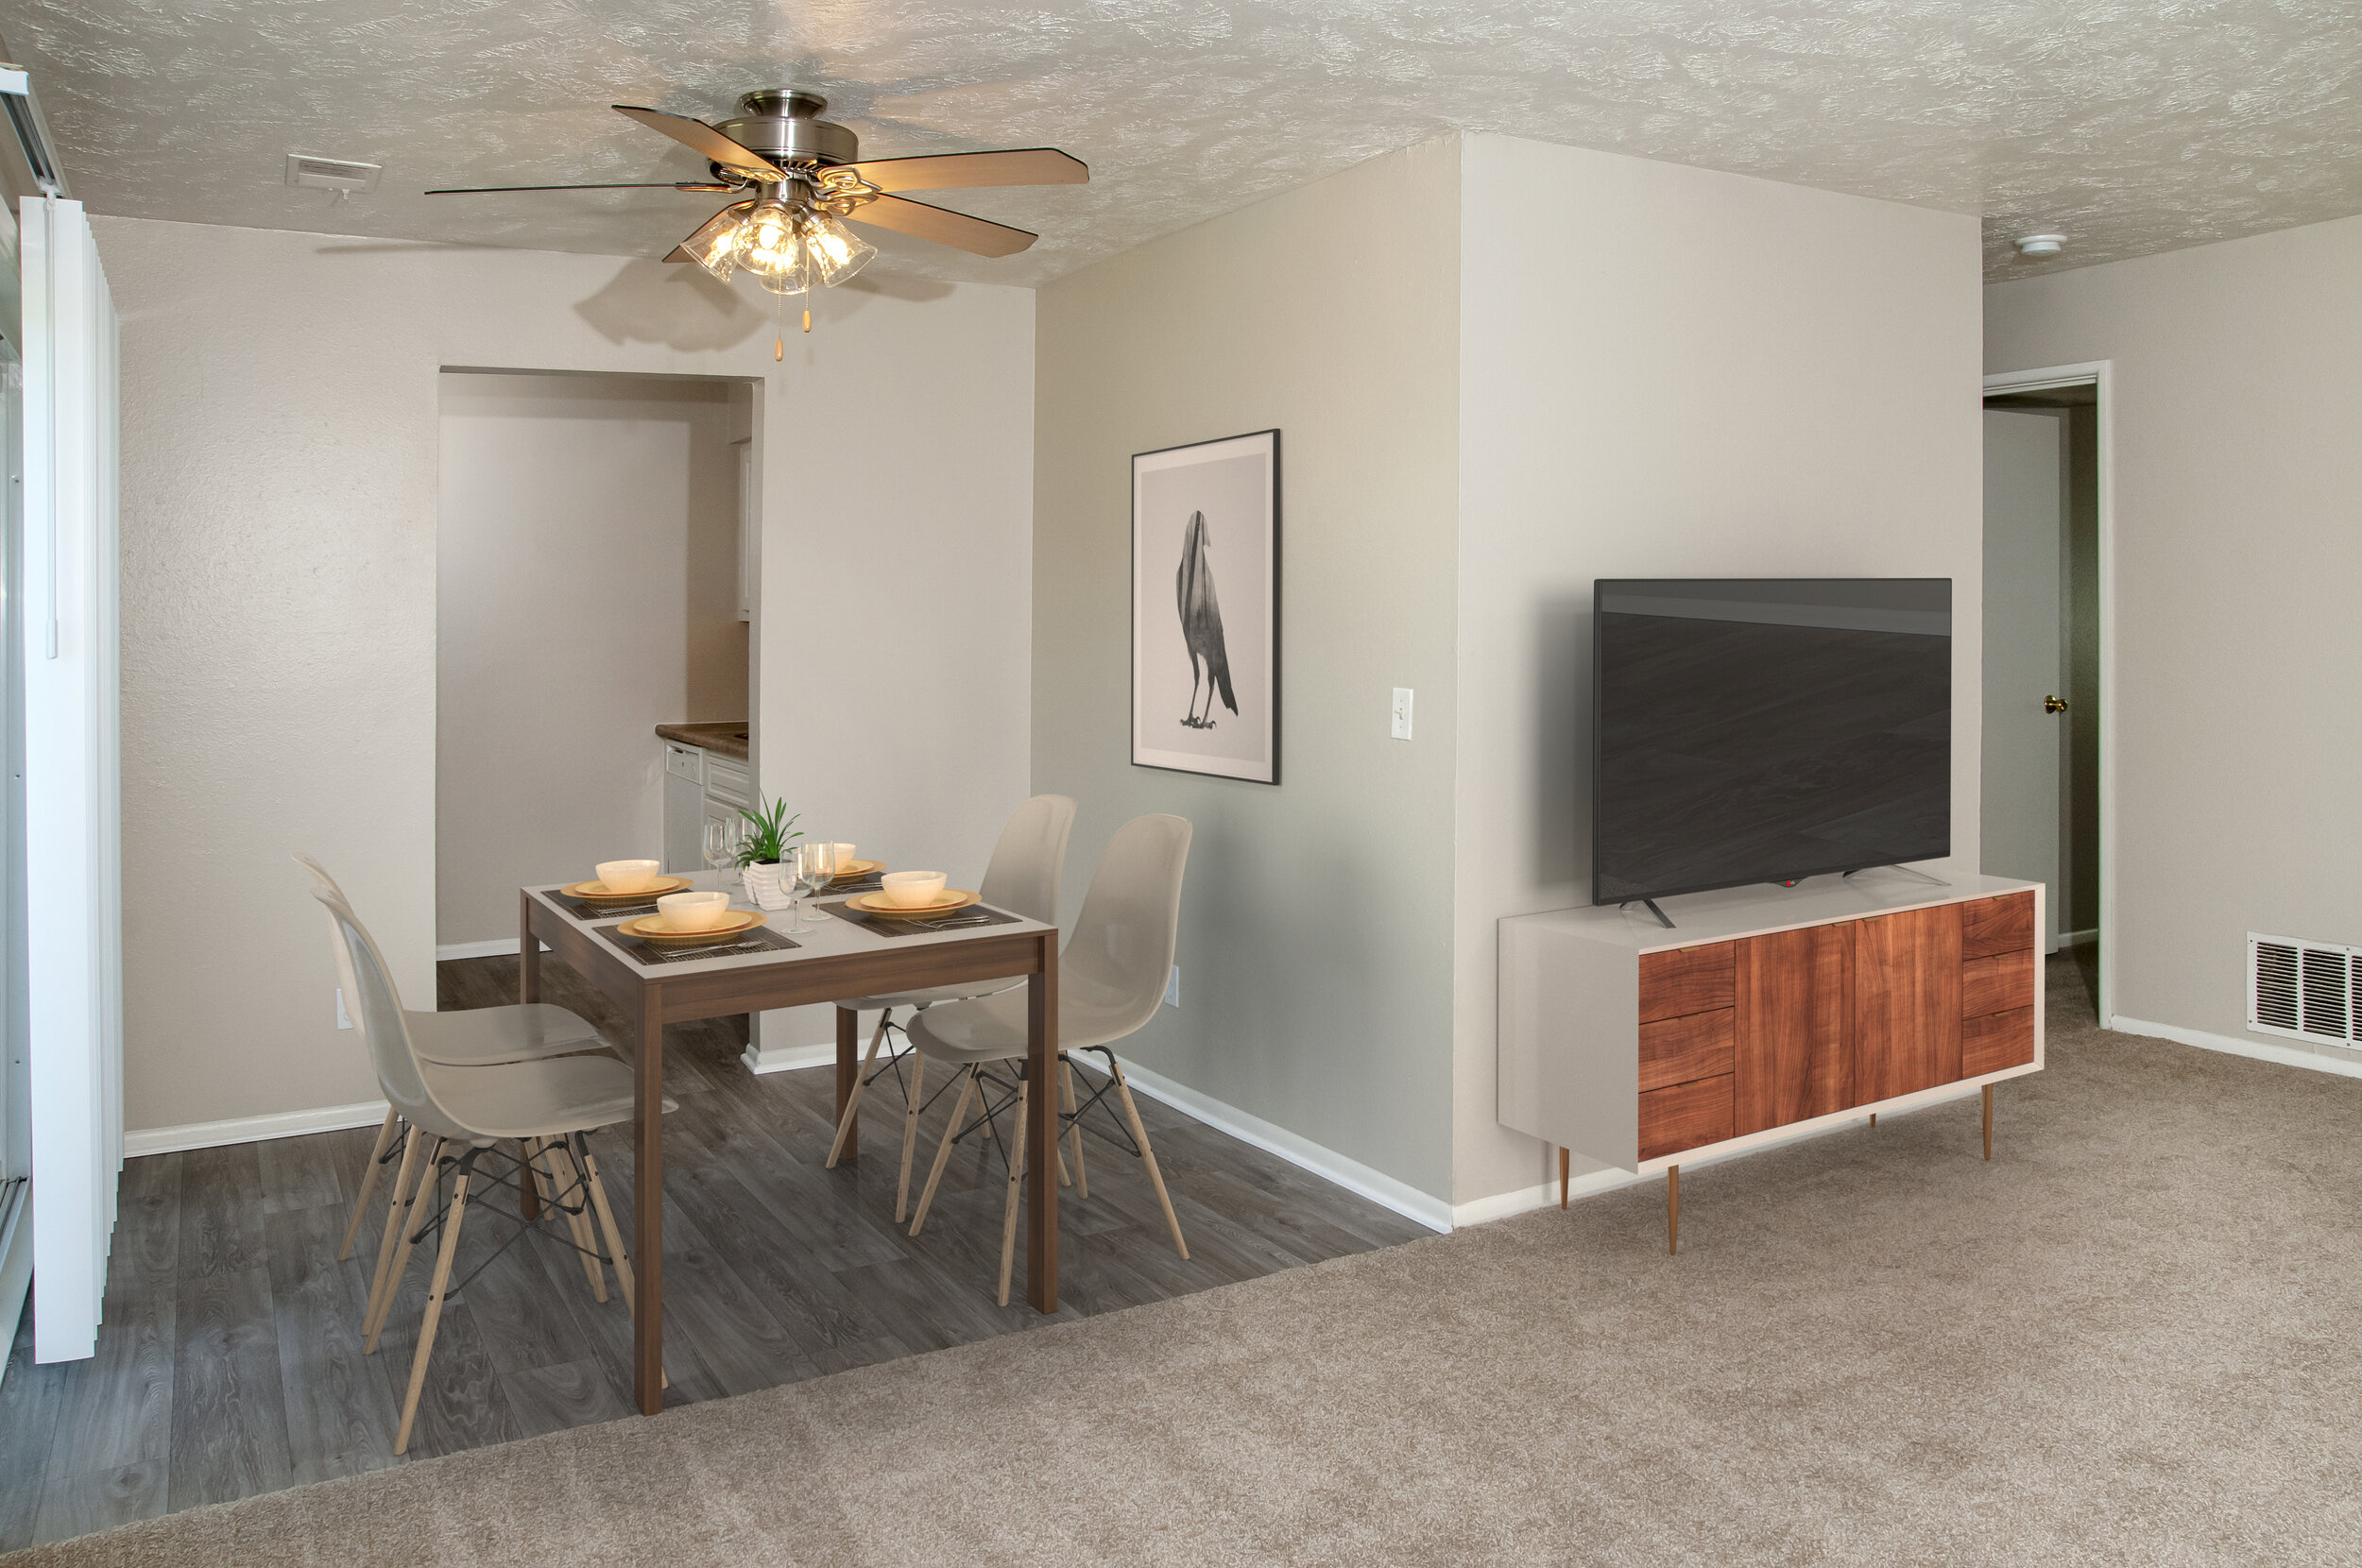 05 Dining Room Leads to the Balcony or Patio.jpg